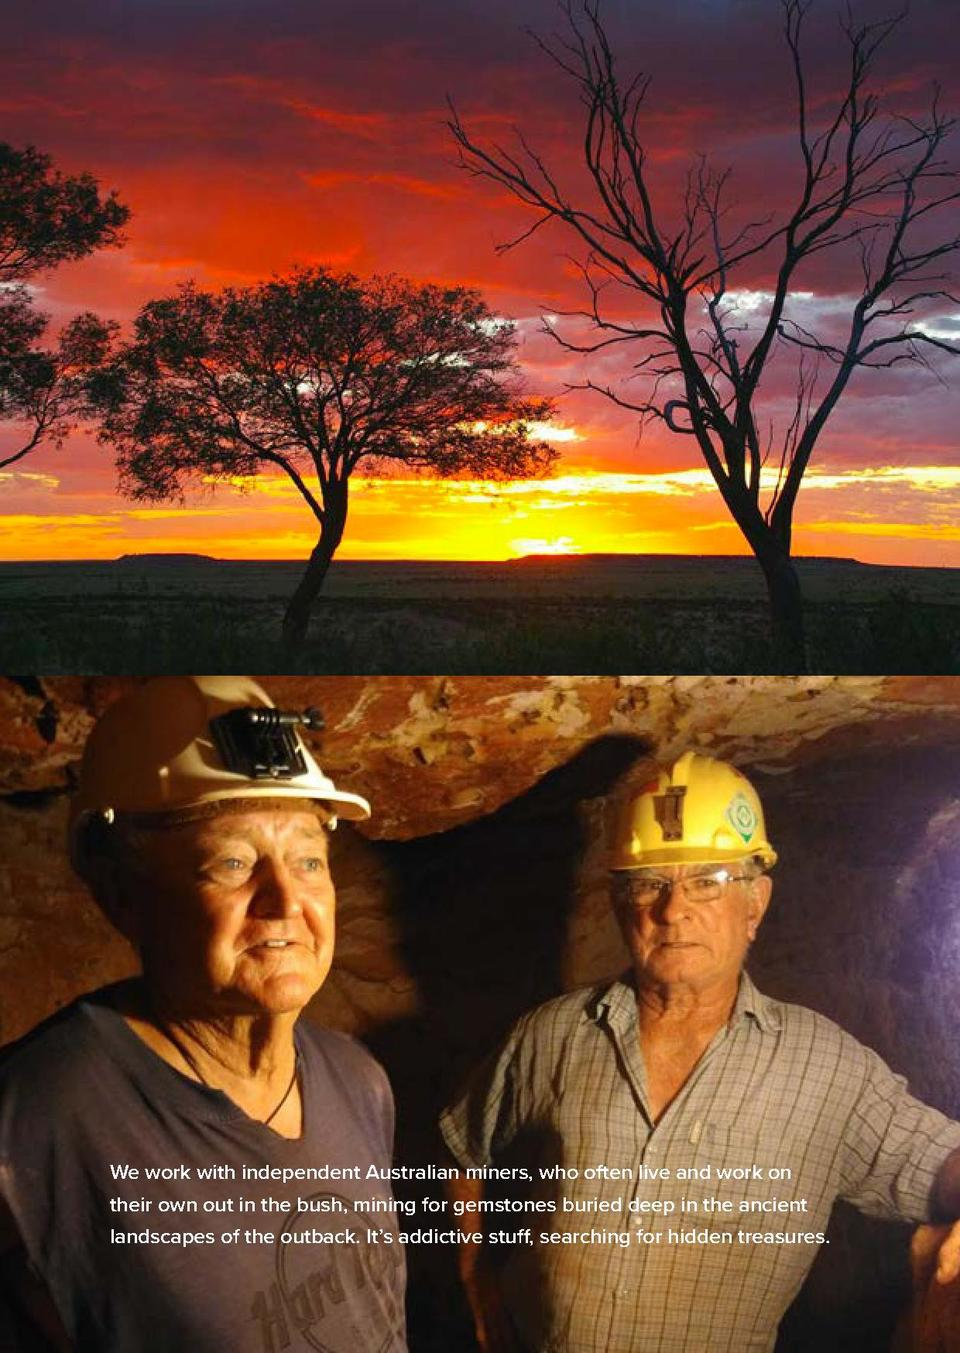 We work with independent Australian miners, who often live and work on their own out in the bush, mining for gemstones bur...